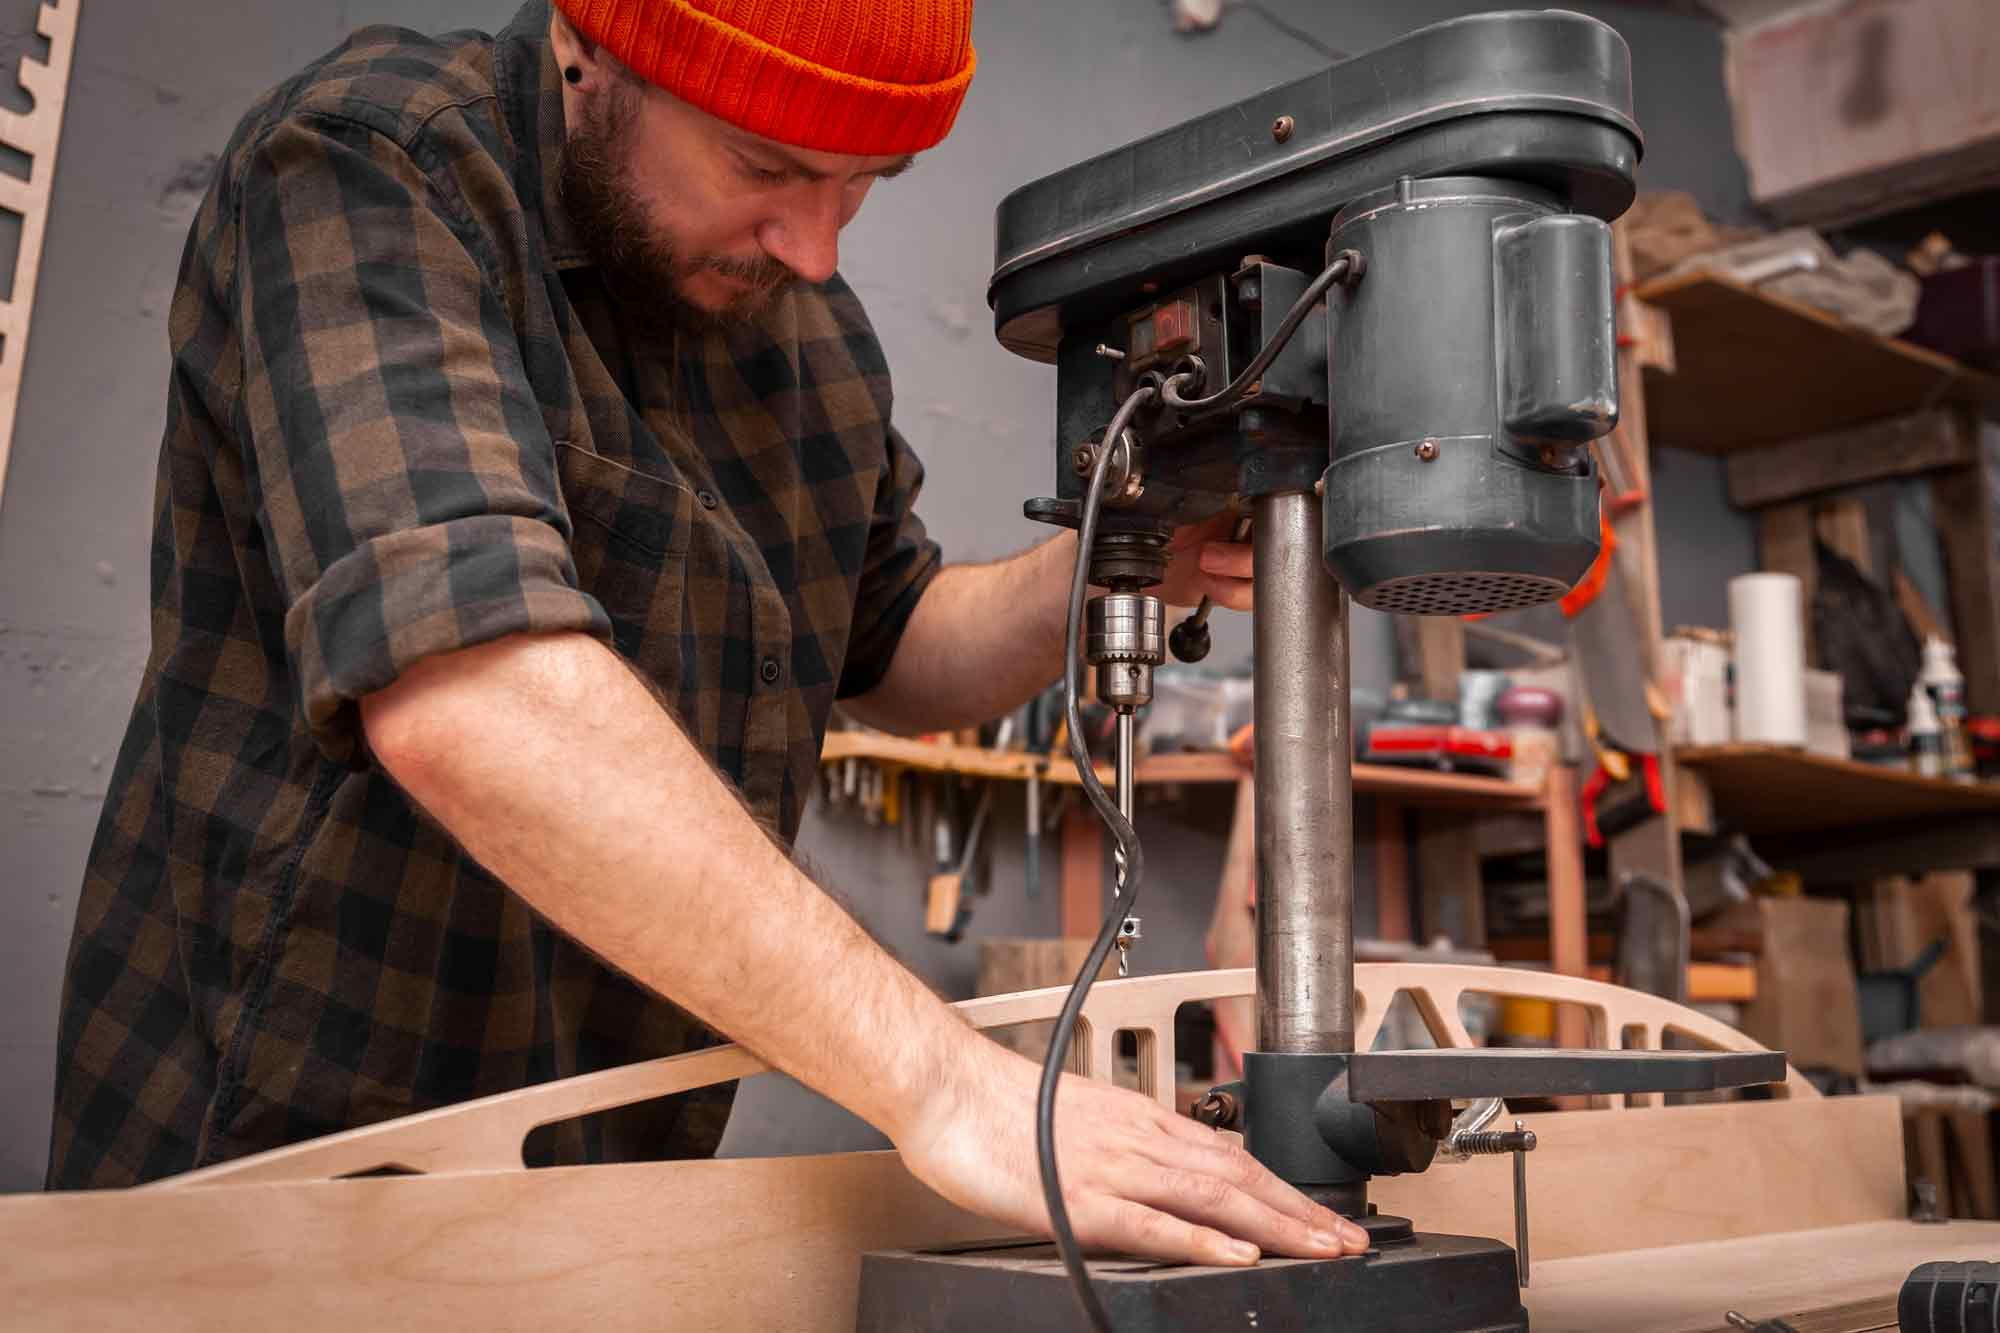 man using a drill press